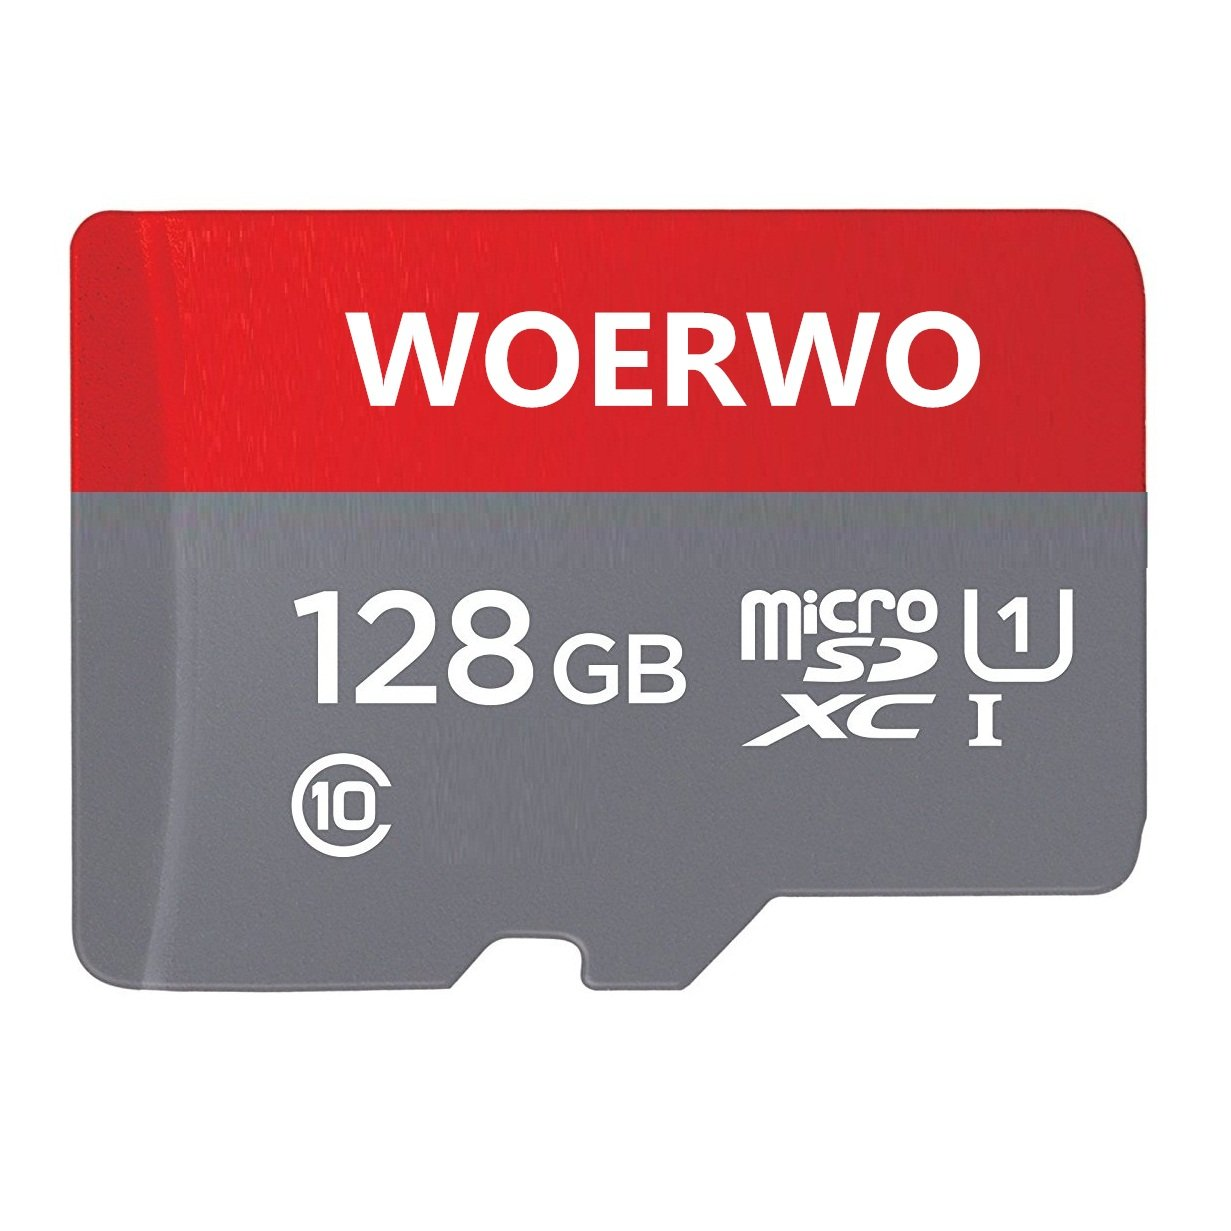 JIJIFLY 128GB SD Micro Memory Card A Free Adapter, High Speed 128 GB SD Micro Card Class 10 Memory Card Memory Expansion, Movie Music Storage, Portable Carrying, Data Copy Traffic Recorder MEM WOERWO